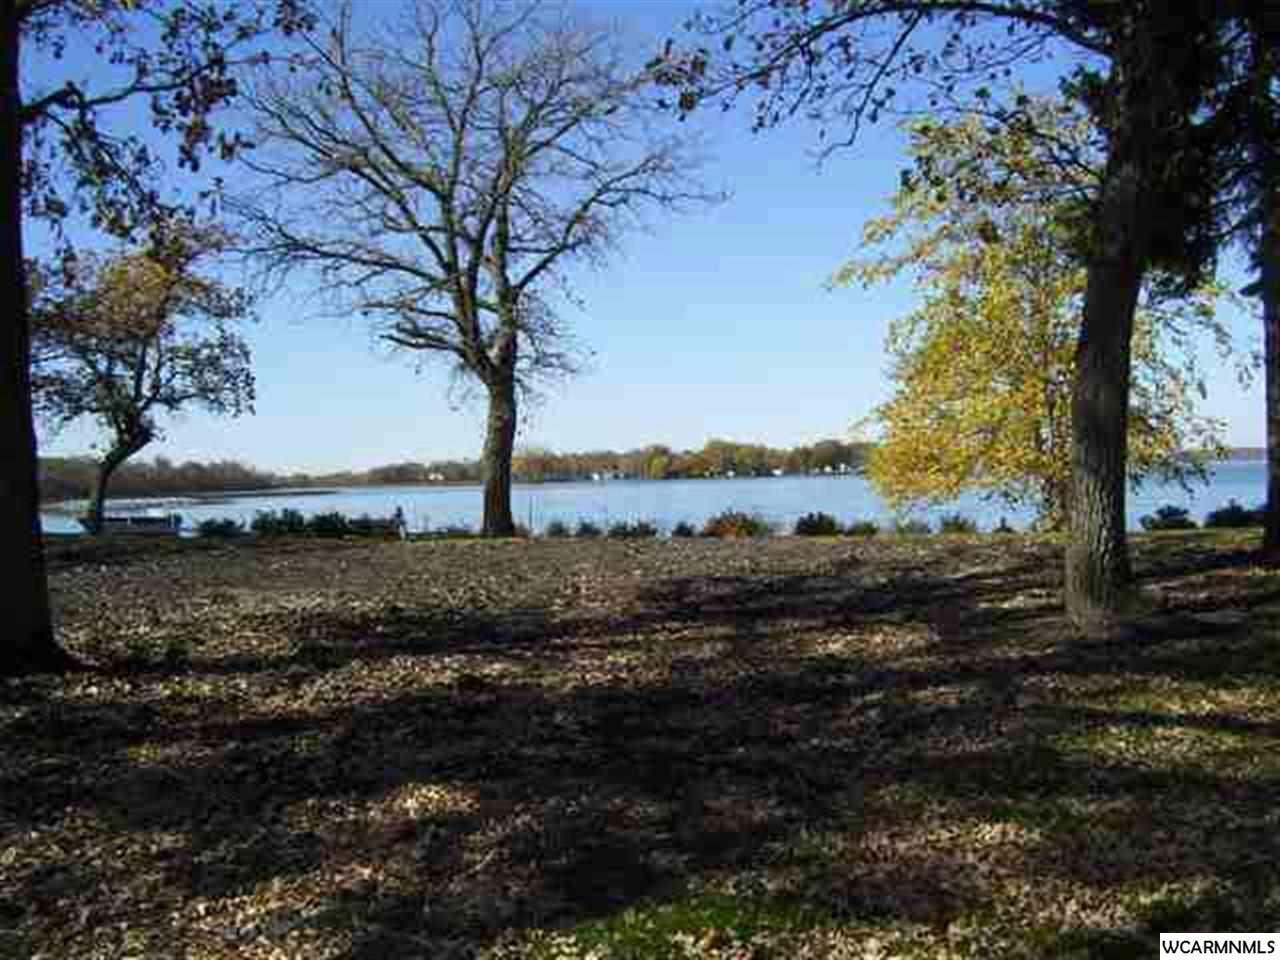 5172 165th Street,Atwater,Residential Land,165th Street,6032828